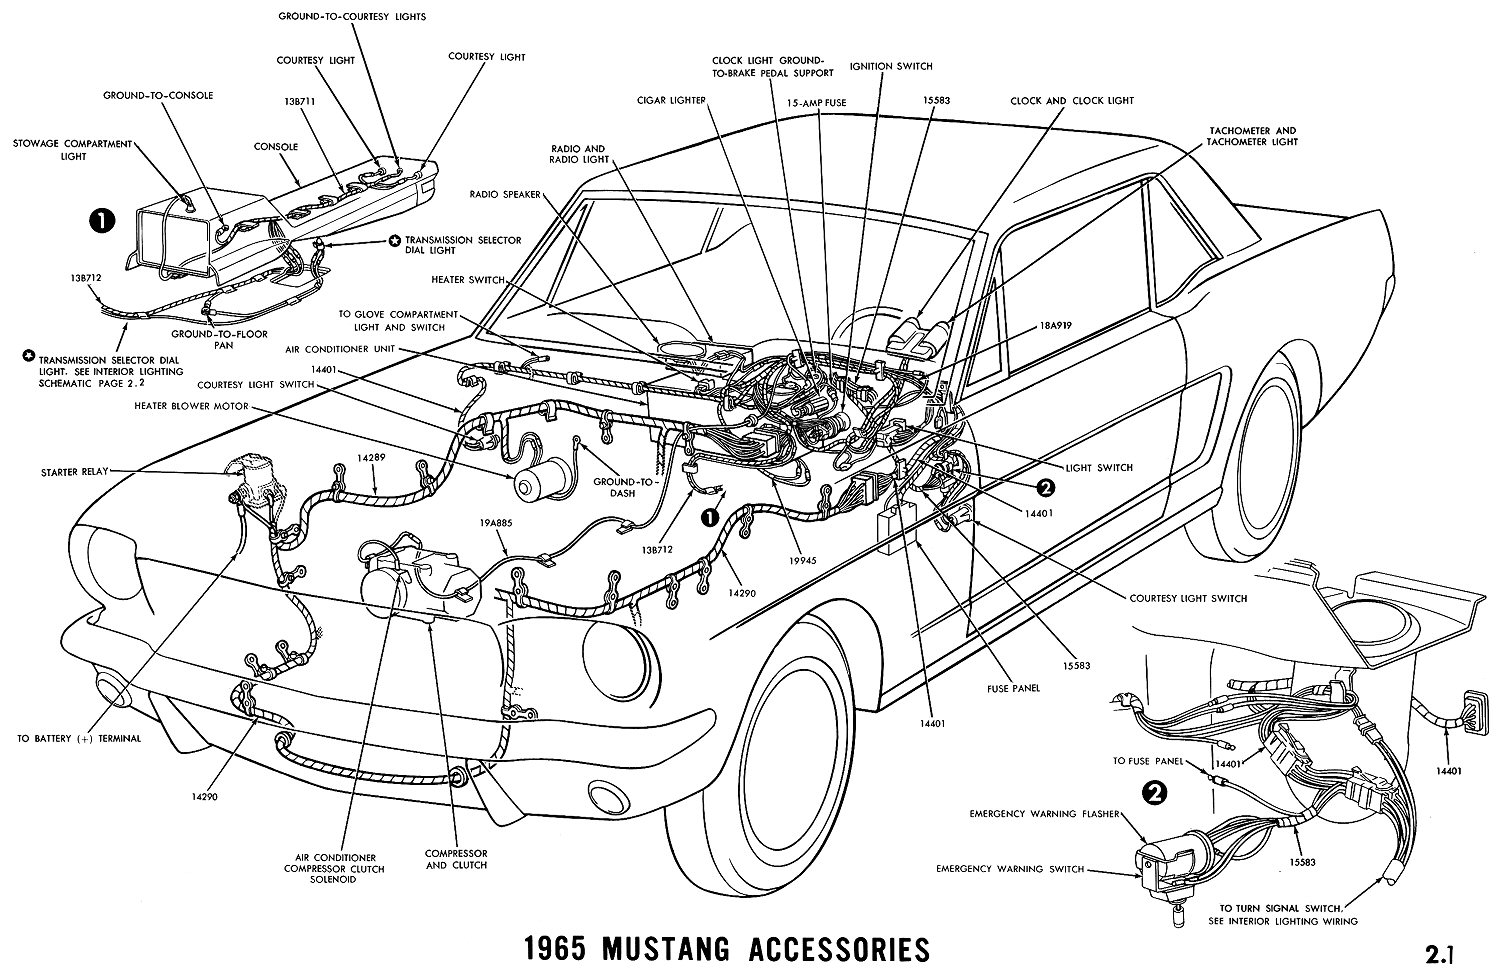 Mustang Fuse Diagram 66 Mustang Wiring Diagram Ford Mustang Fuse Box on 65 mustang voltage regulator wiring, 65 mustang neutral safety switch wiring, 65 mustang alternator wiring, 65 mustang wiper switch wiring, 65 mustang fog light wiring, 65 mustang wiper motor wiring, 65 mustang starter wiring, 65 mustang headlight switch wiring, 65 mustang engine wiring,